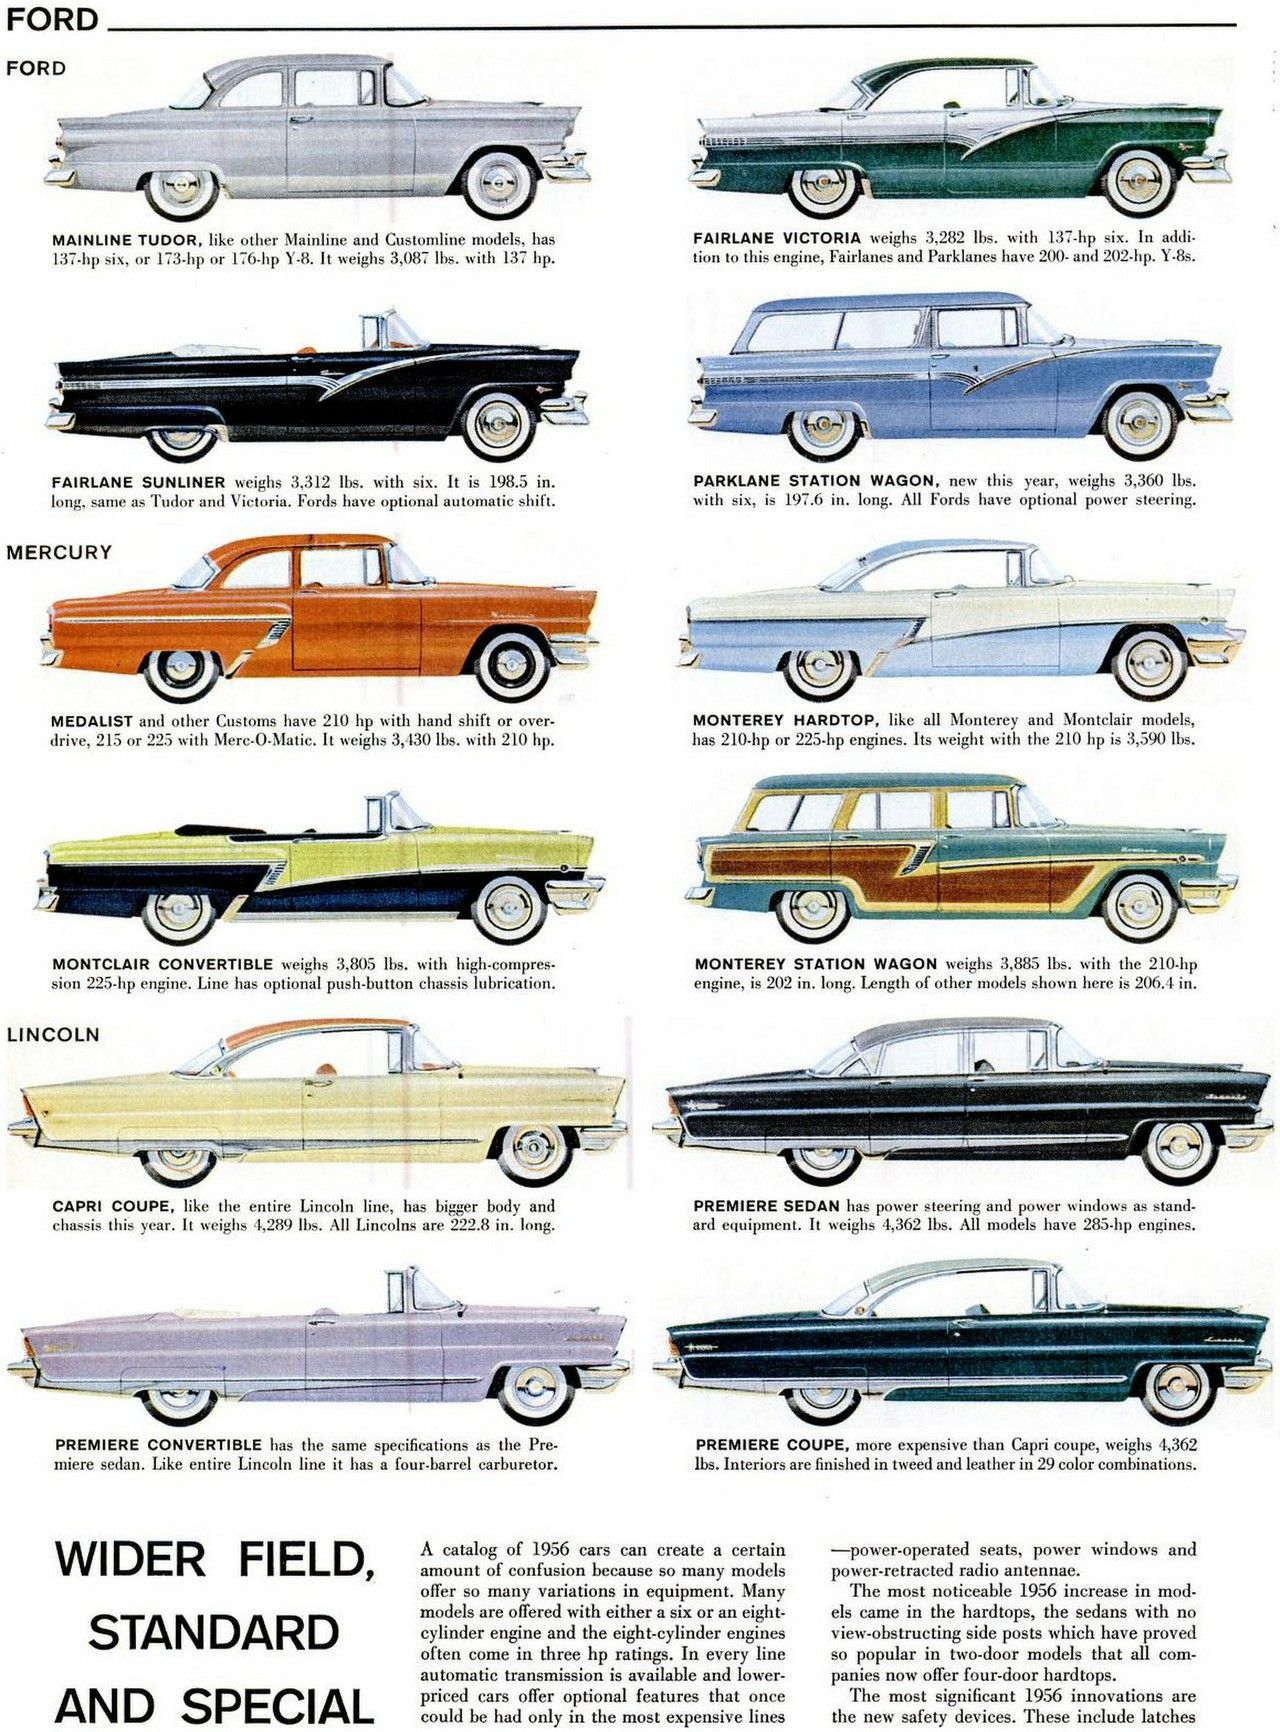 1956 Cars With Images Classic Cars Ford Motor Company Ford Motor